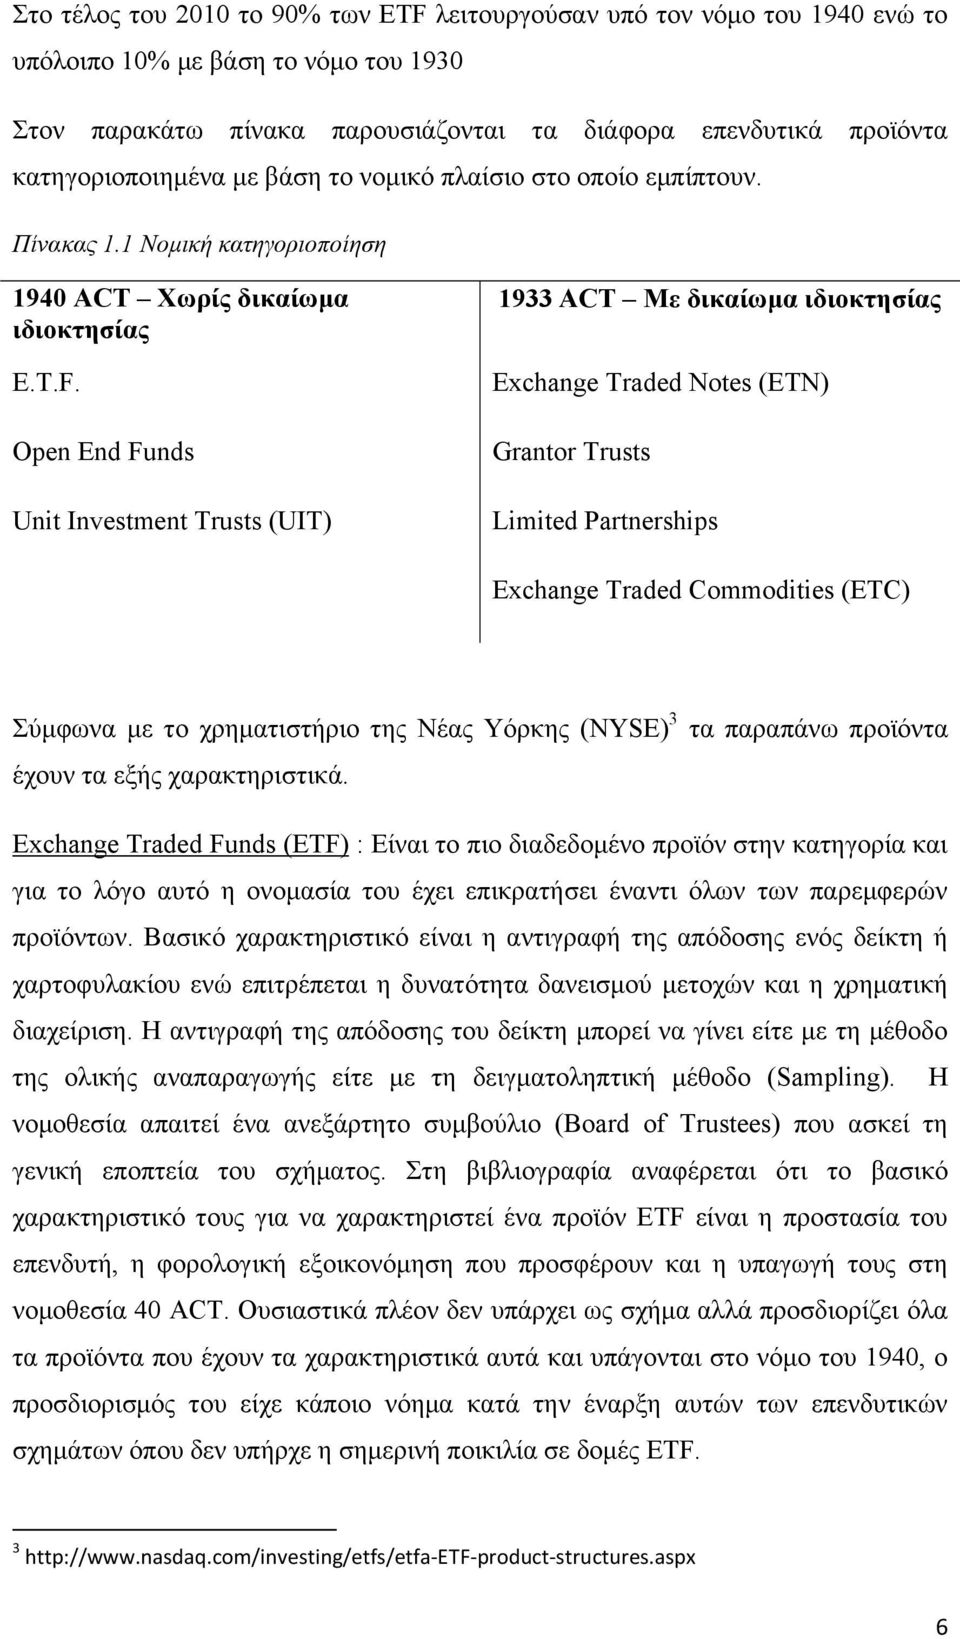 Exchange Traded Notes (ETN) Open End Funds Grantor Trusts Unit Investment Trusts (UIT) Limited Partnerships Exchange Traded Commodities (ETC) Σύμφωνα με το χρηματιστήριο της Νέας Υόρκης (NYSE)3 τα